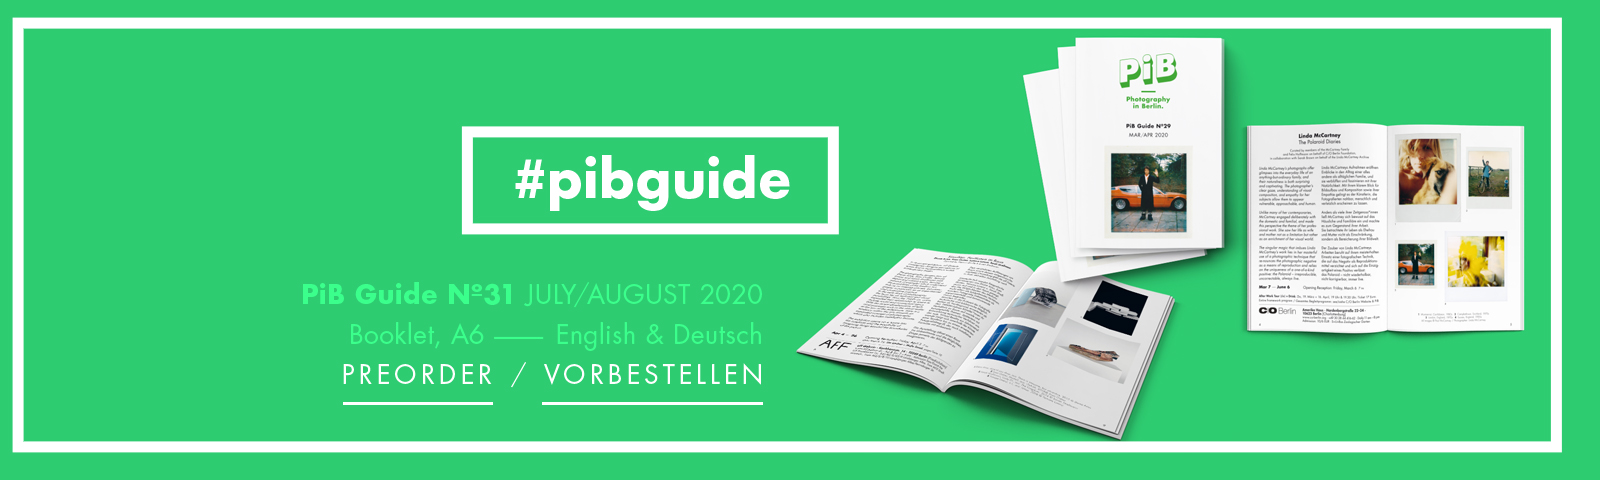 Pre-order Your PiB Guide Nº31 JULY/AUG 2020 © PiB – Photography In Berlin #pibguide